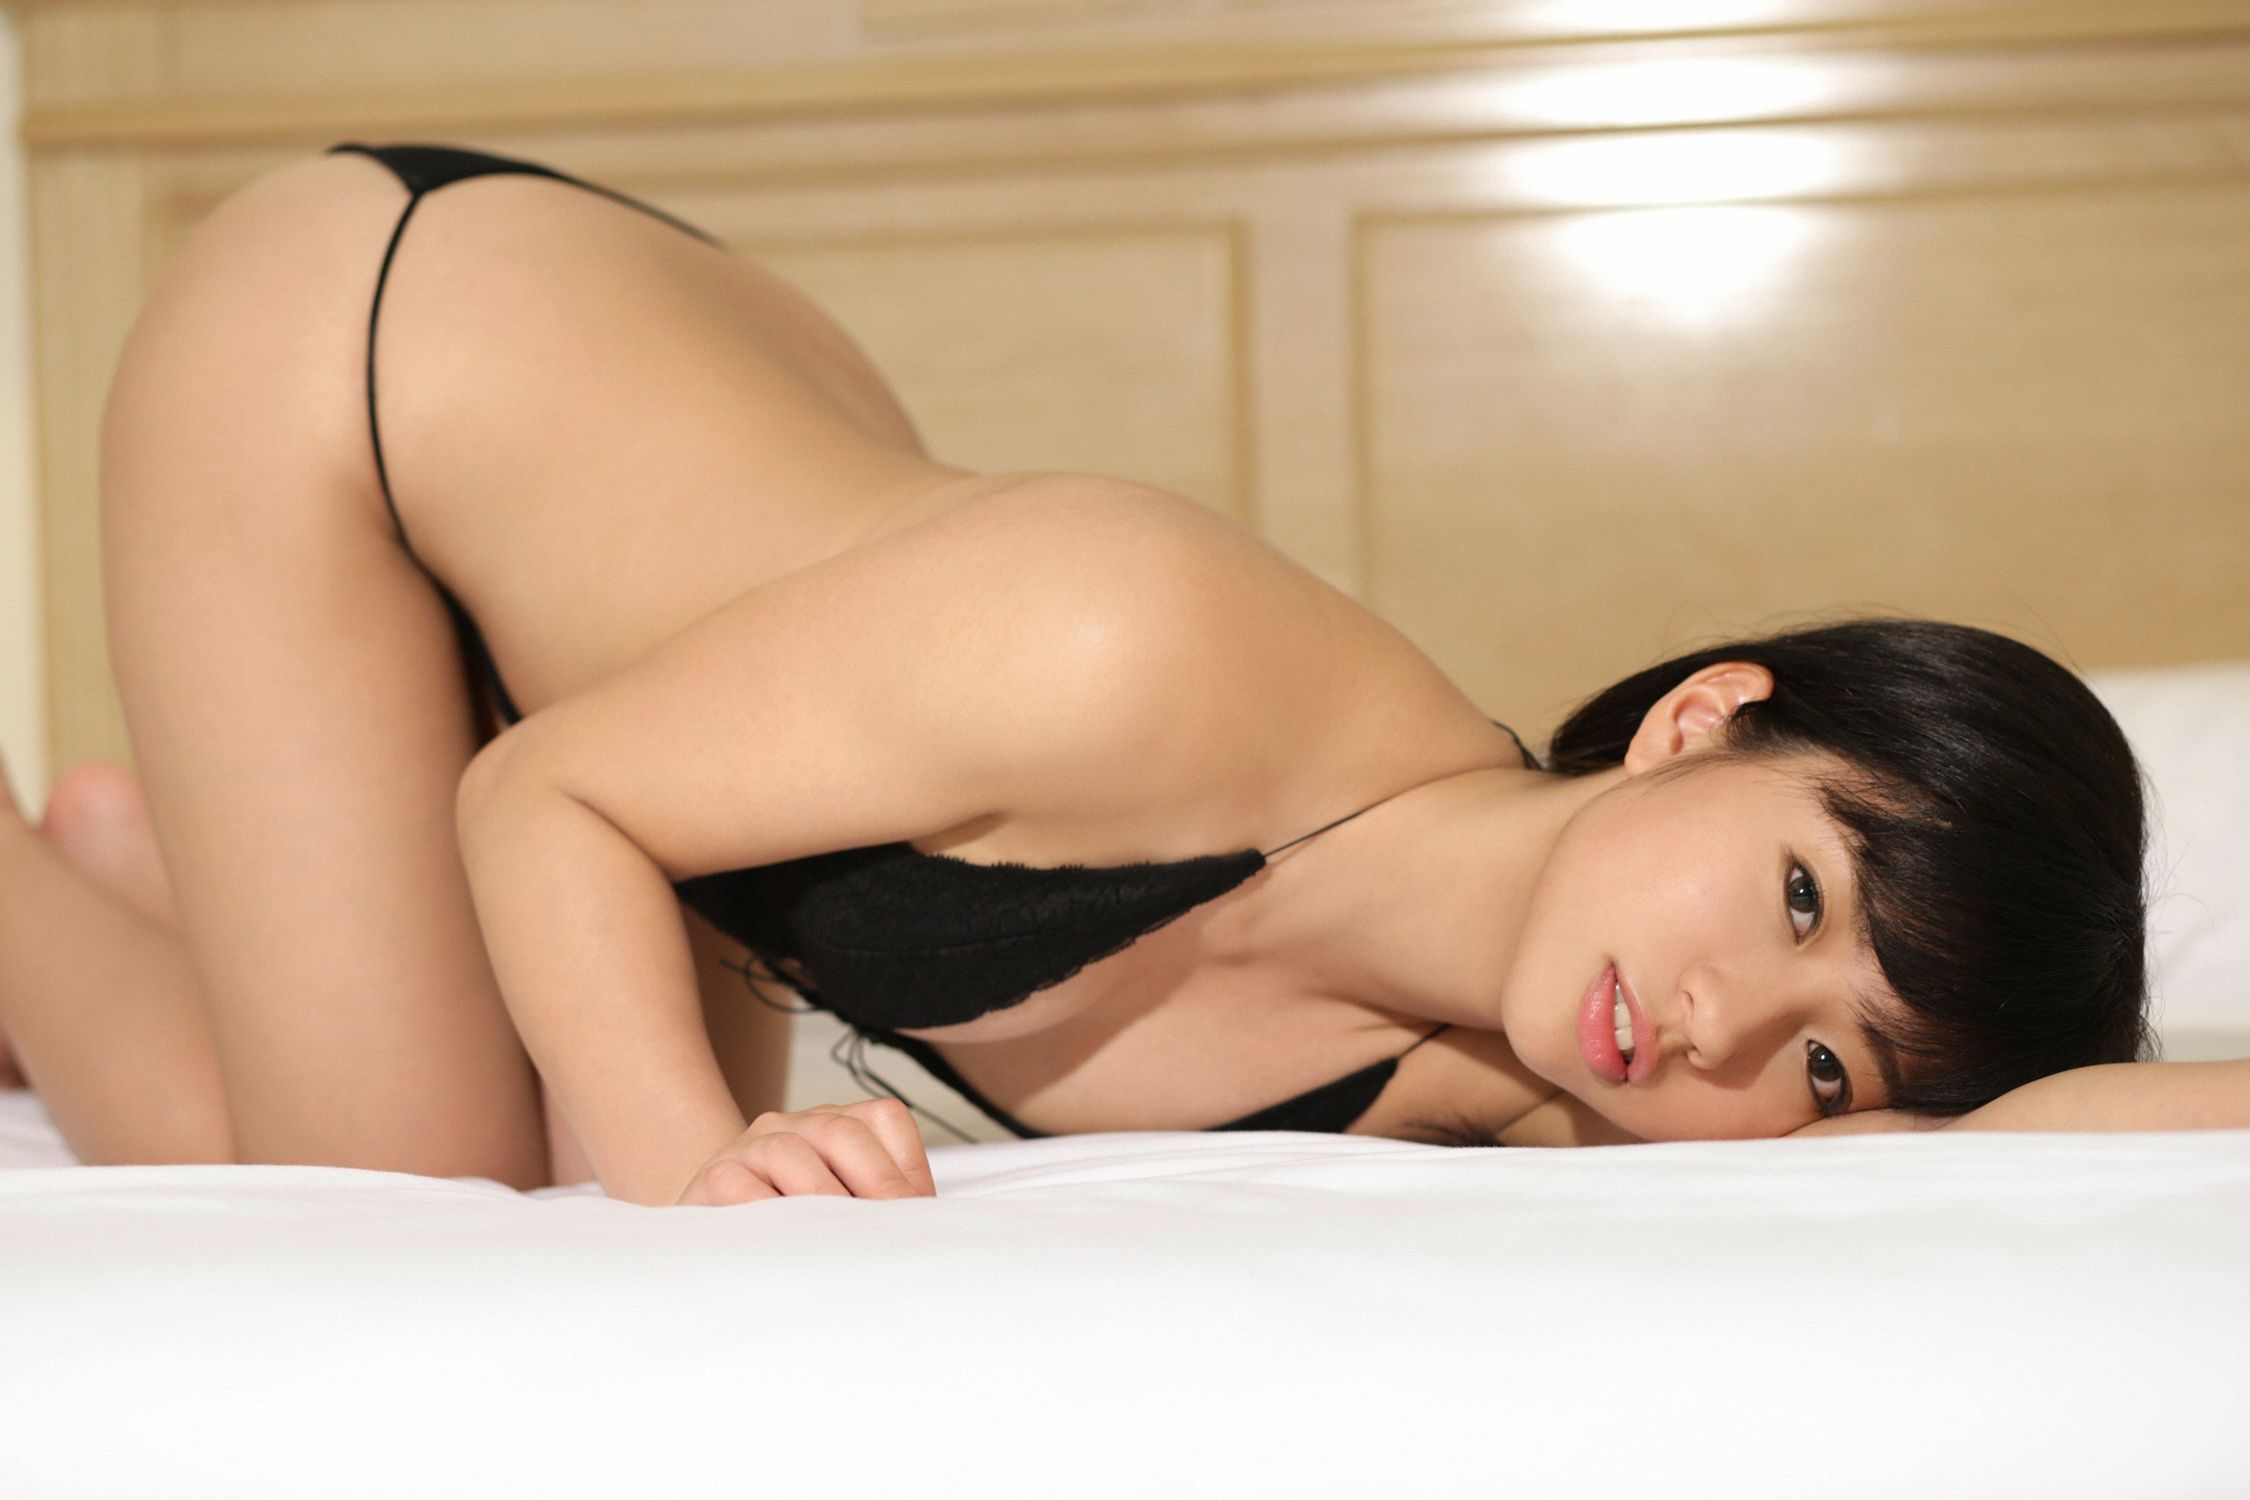 Ayaka Onuki an active female college student with a wonderful body style and fine skin075